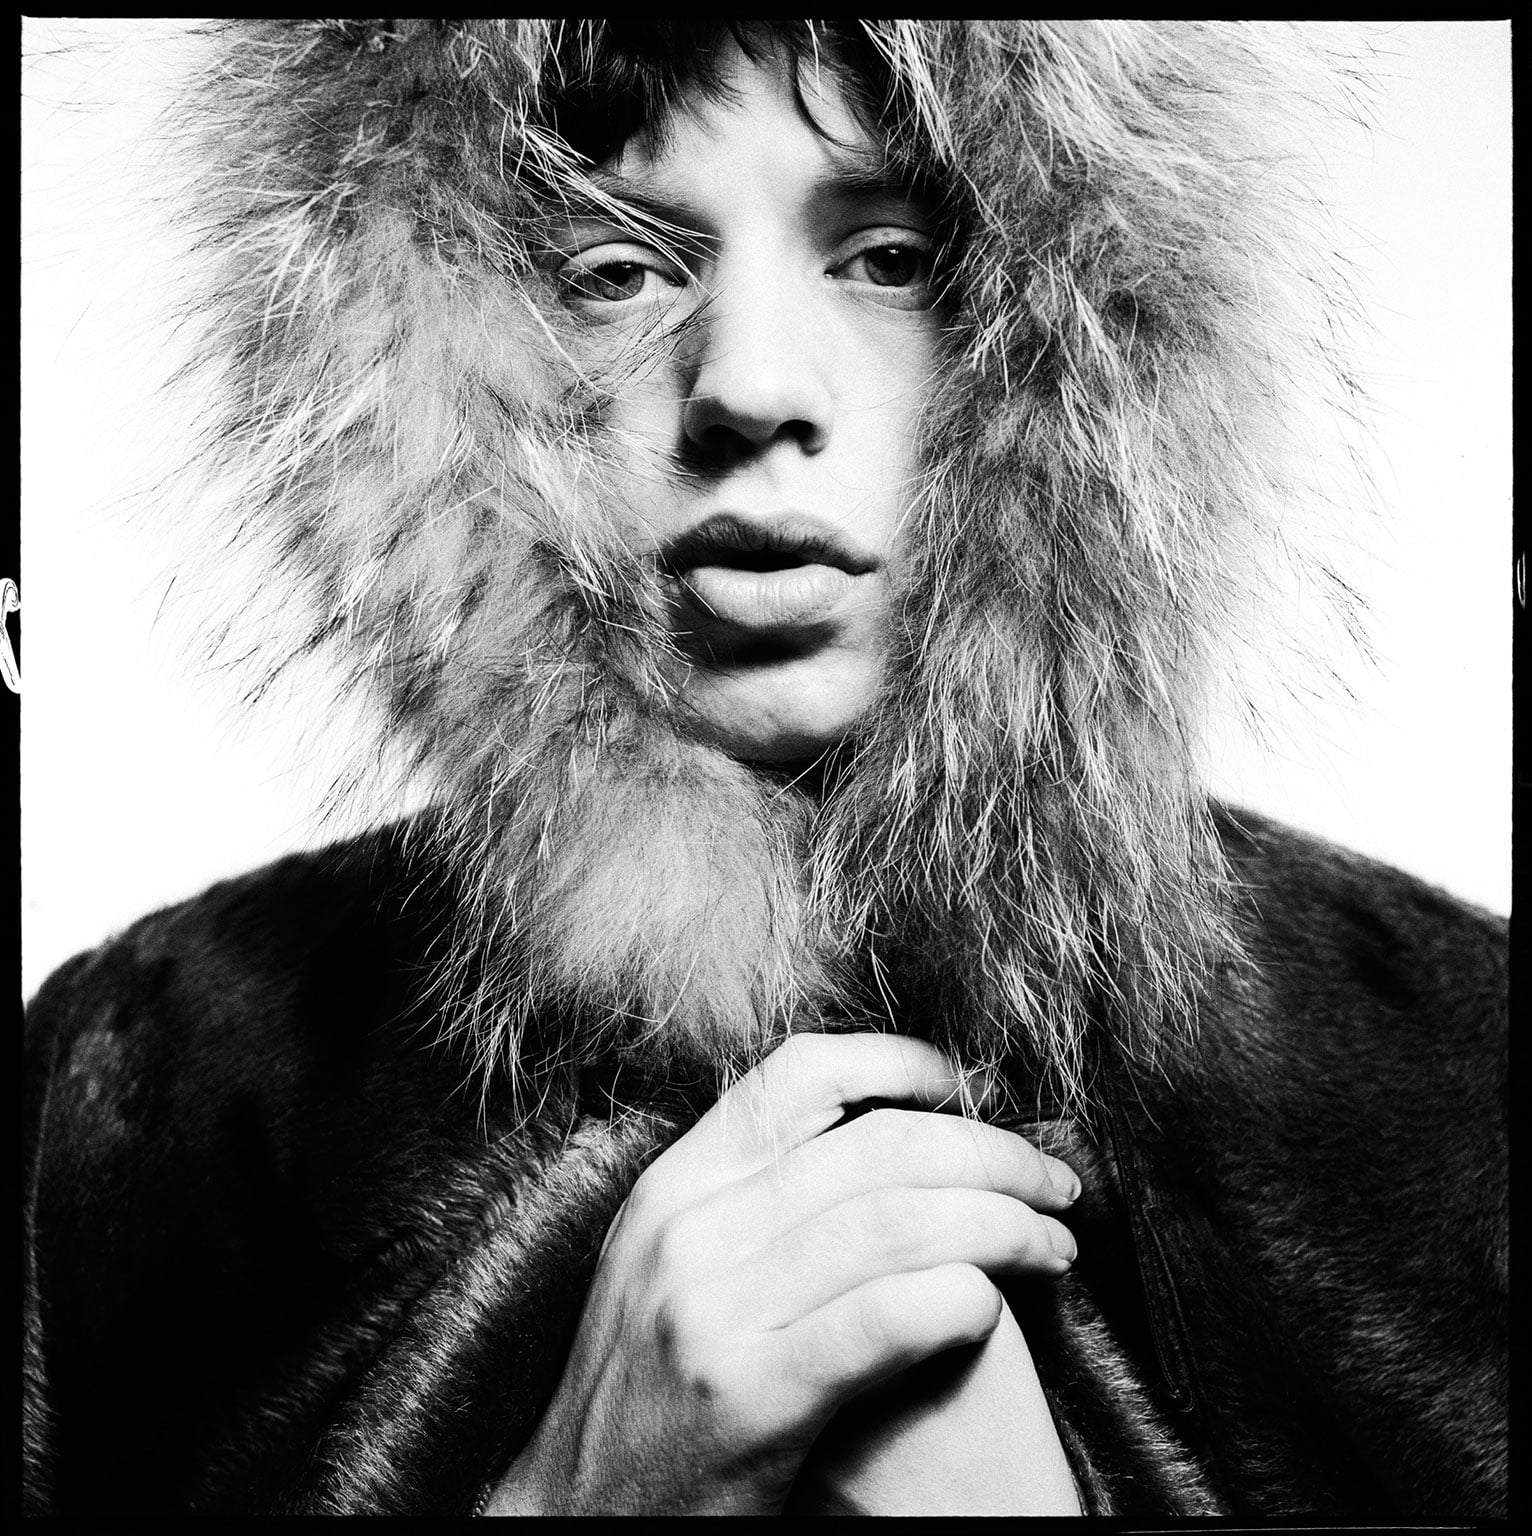 3. Bailey's Stardust, Scottish National Gallery, 50% off with National Art Pass - David Bailey, Mick Jagger by David Bailey, 1964